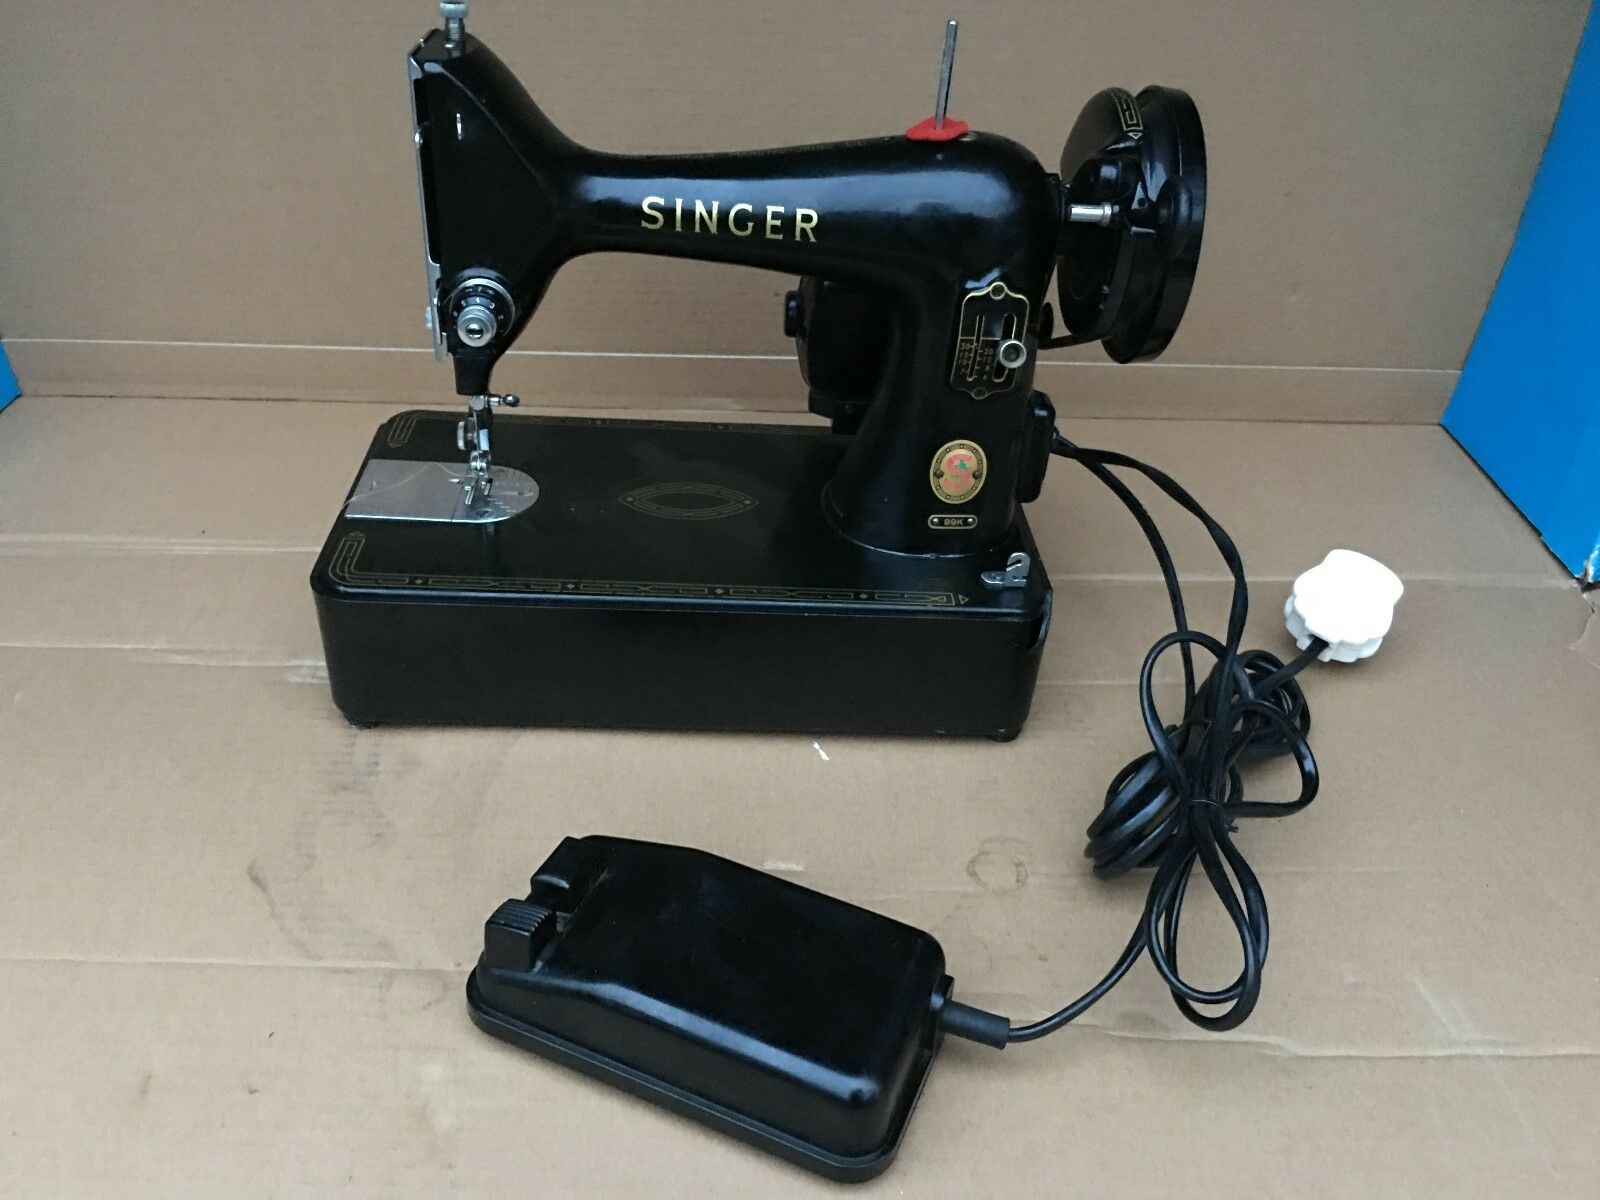 Singer Electric Baby 99K Sewing Machine, Vintage and collectable comes shown